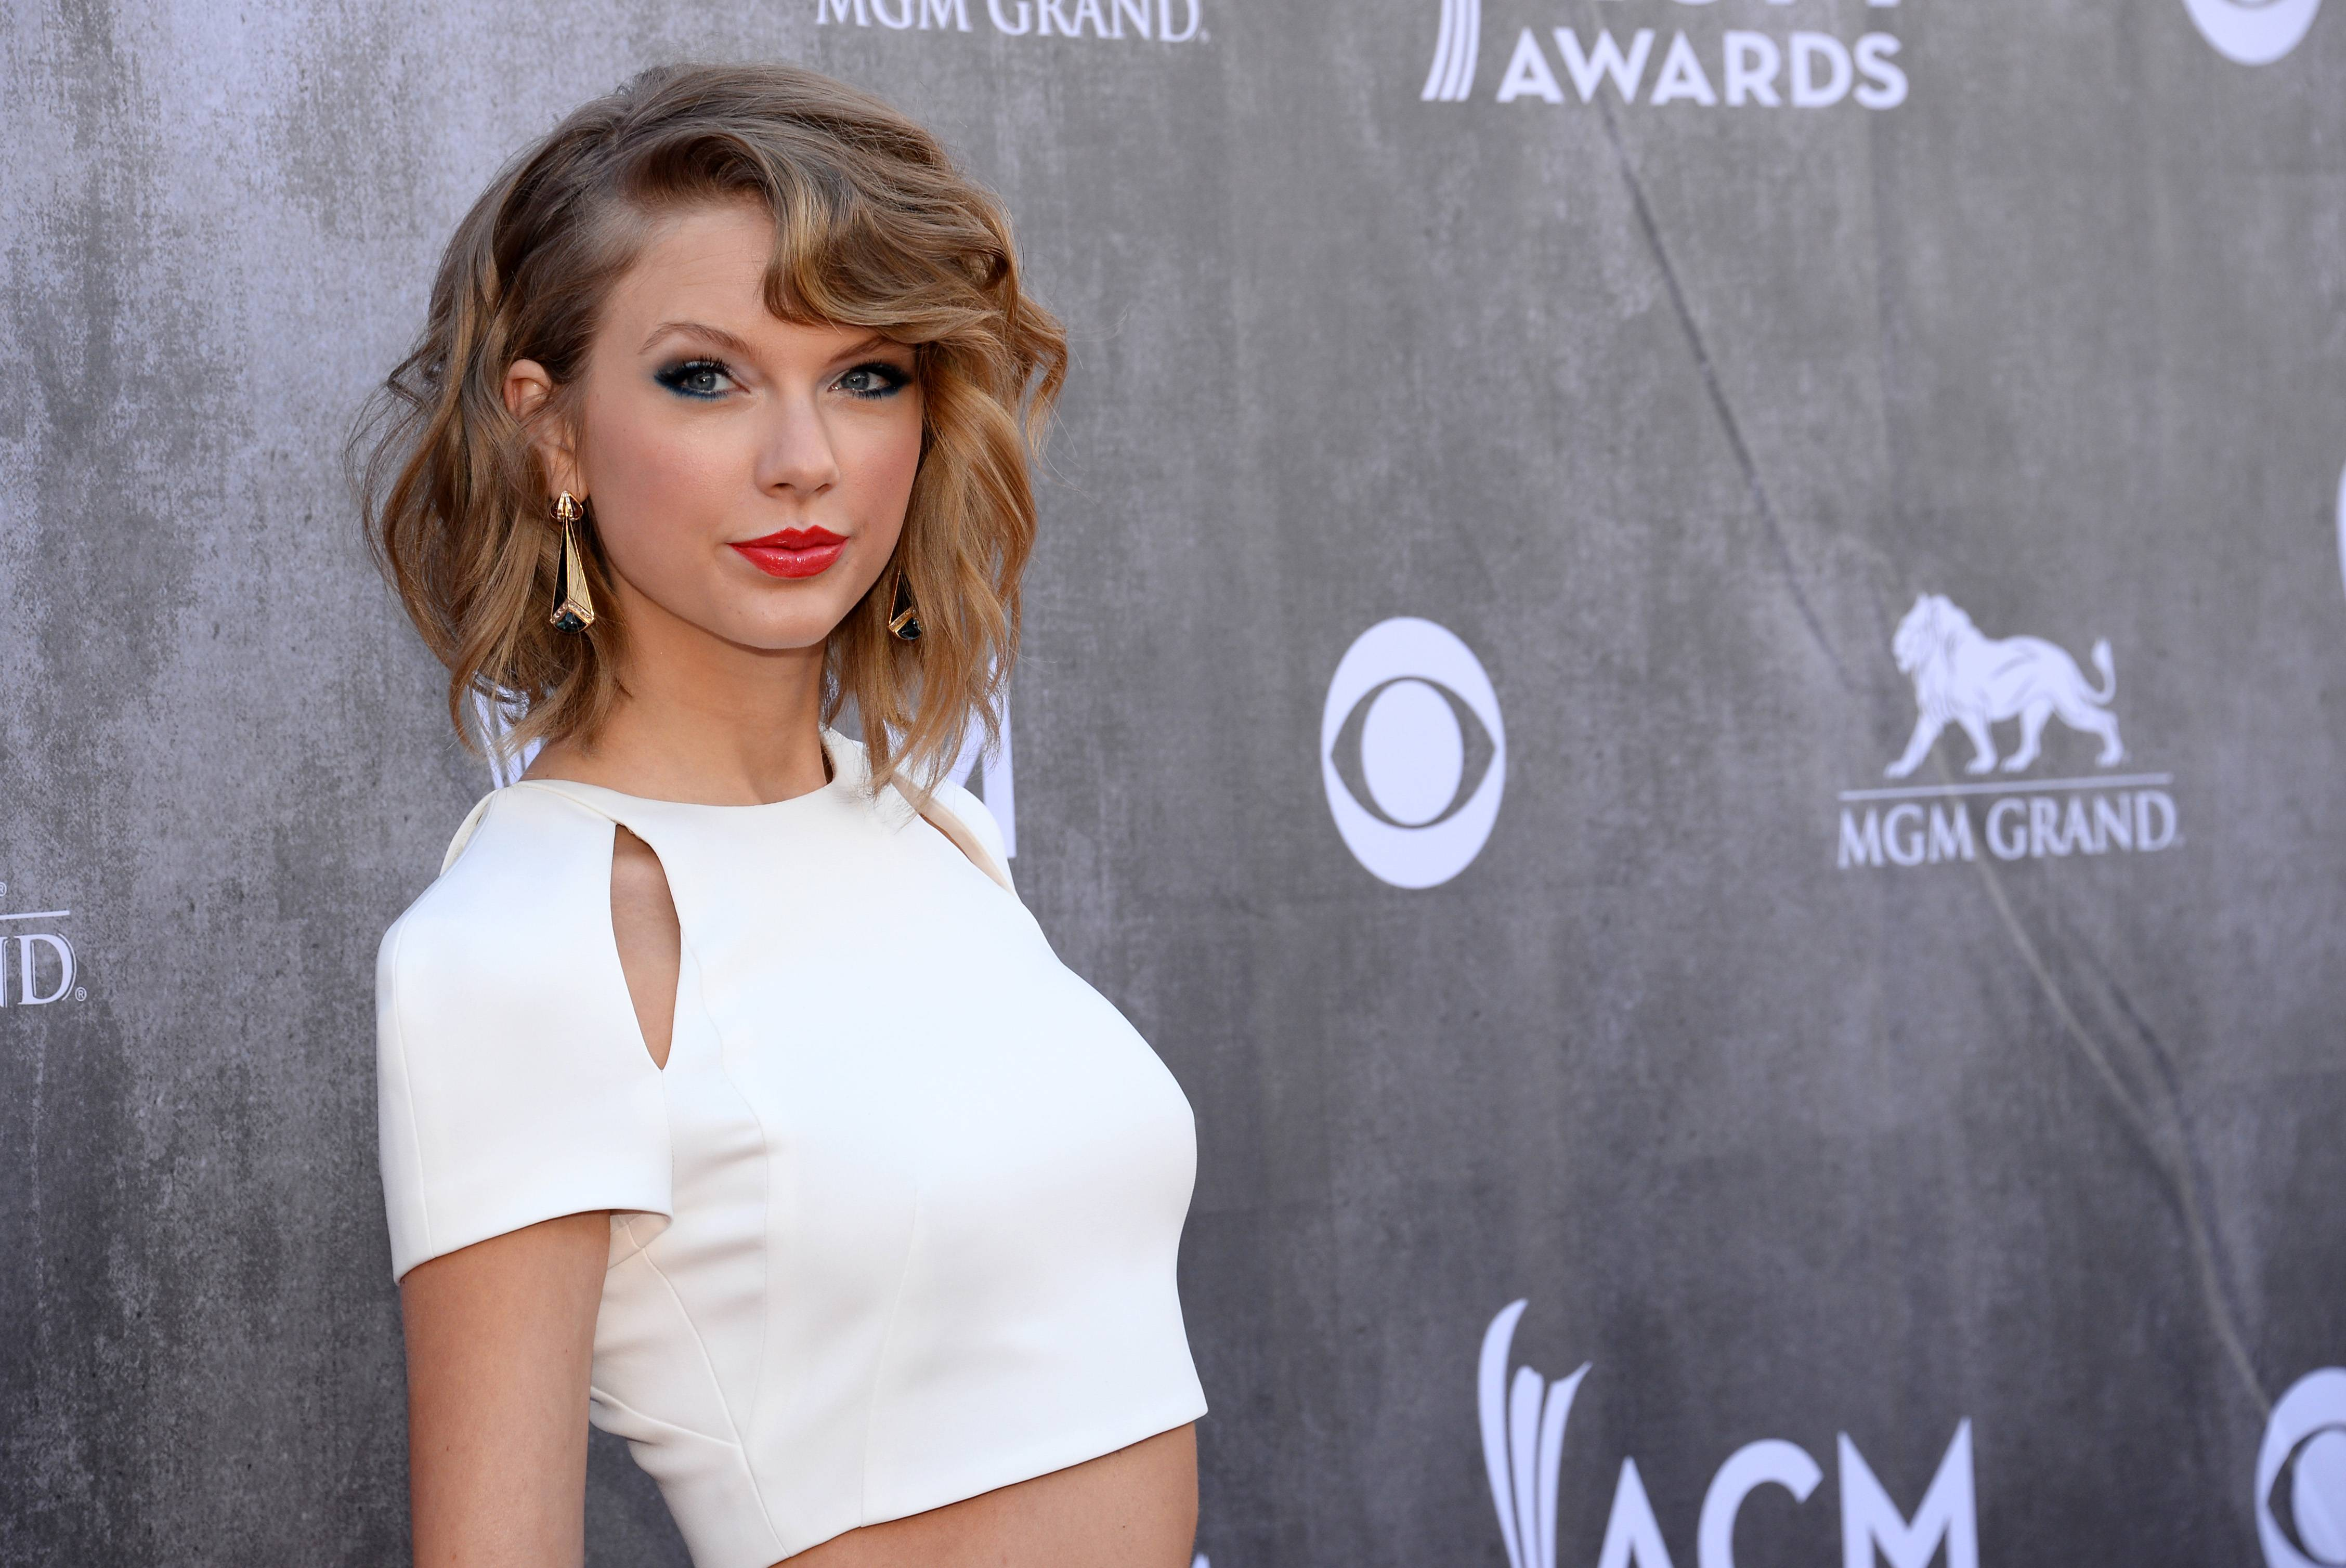 Taylor Swift has canceled a sold-out concert in Thailand, which came under military rule last week after a coup d'etat.